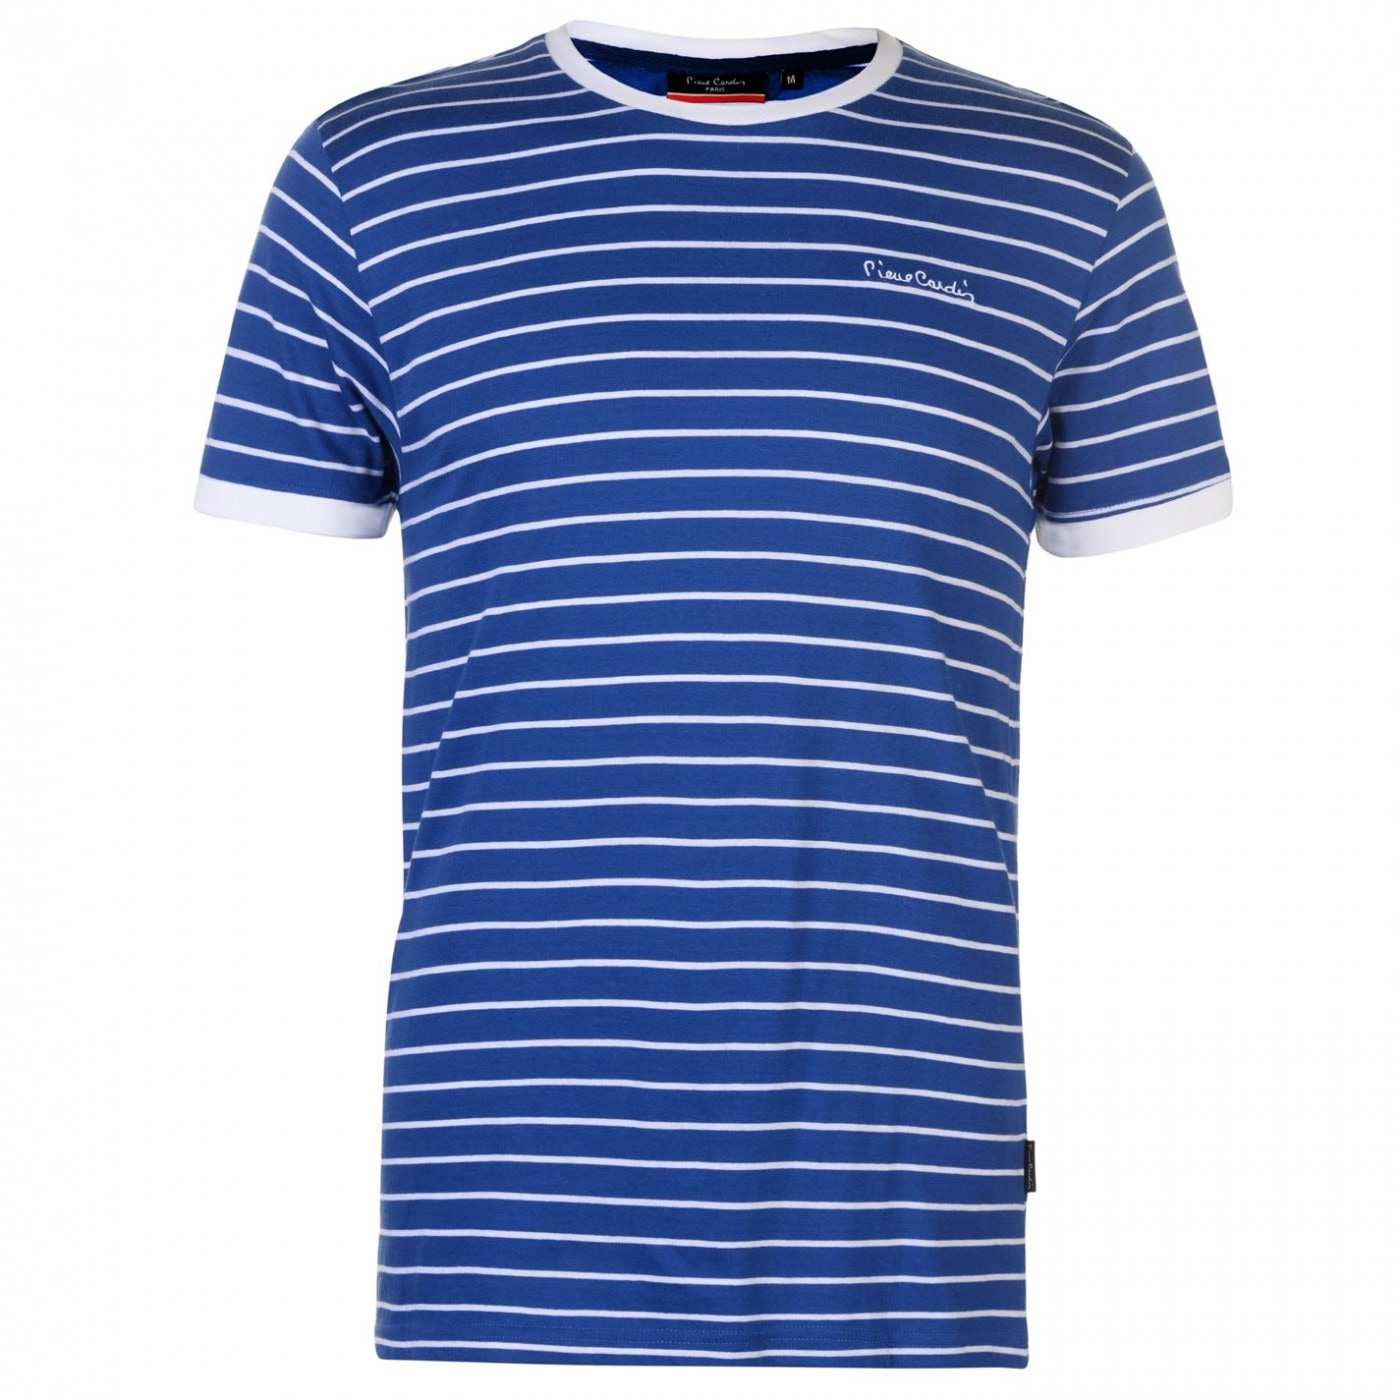 Pierre Cardin Stripe Ringer T Shirt Mens